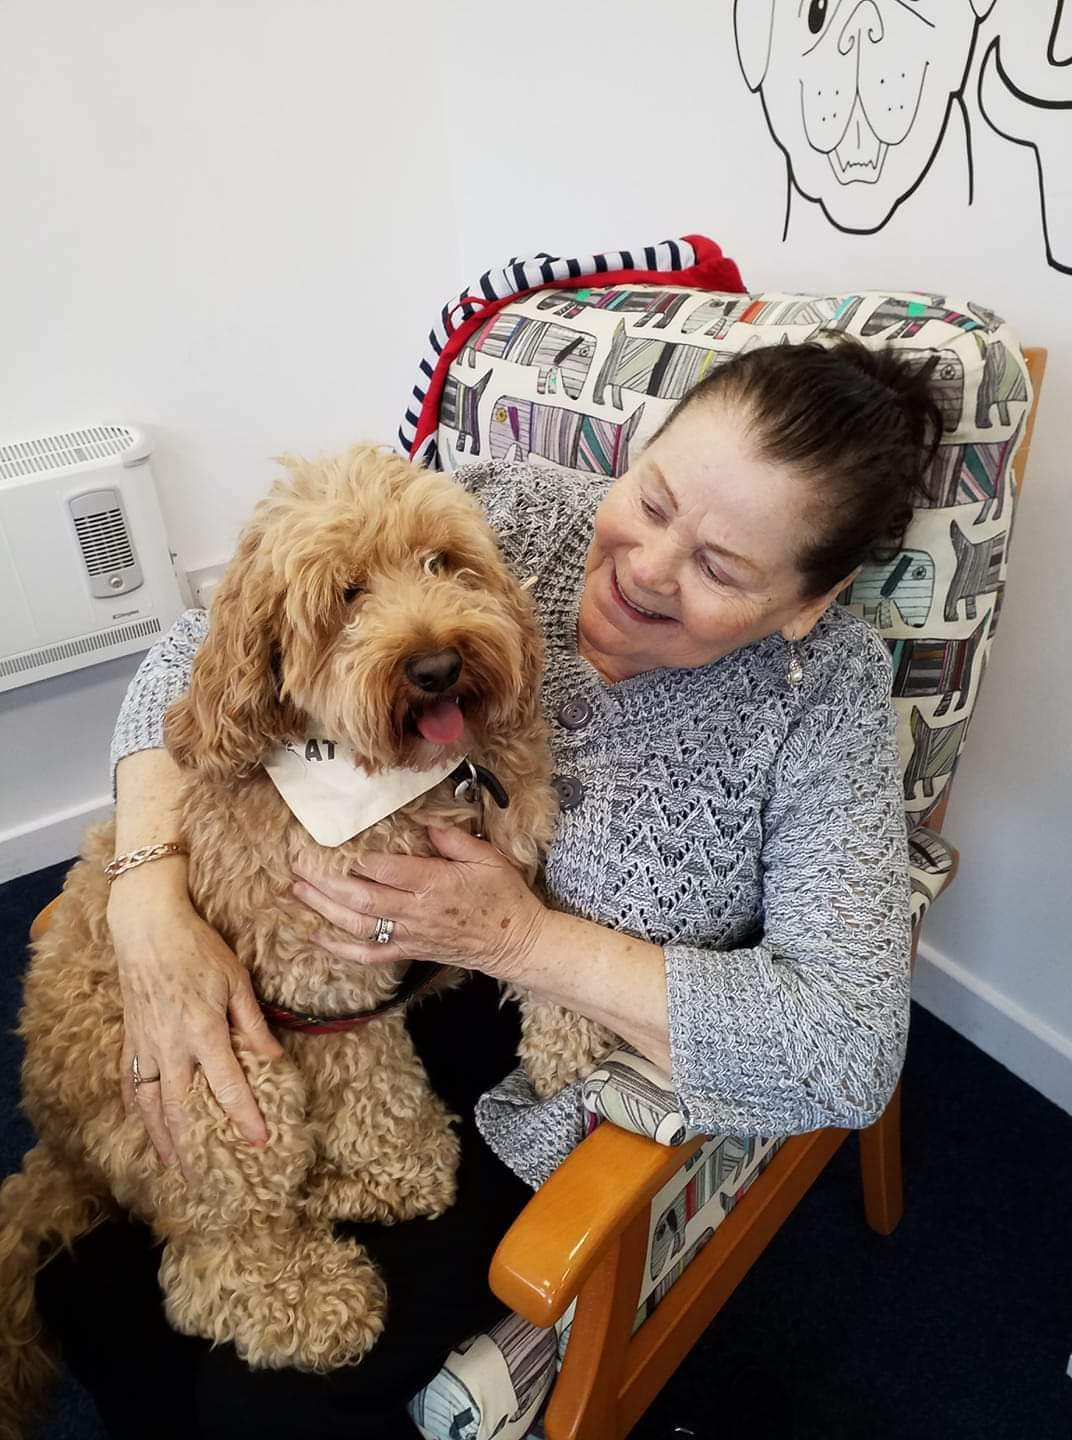 Give a Dog a Bone and an animal a home | Service User